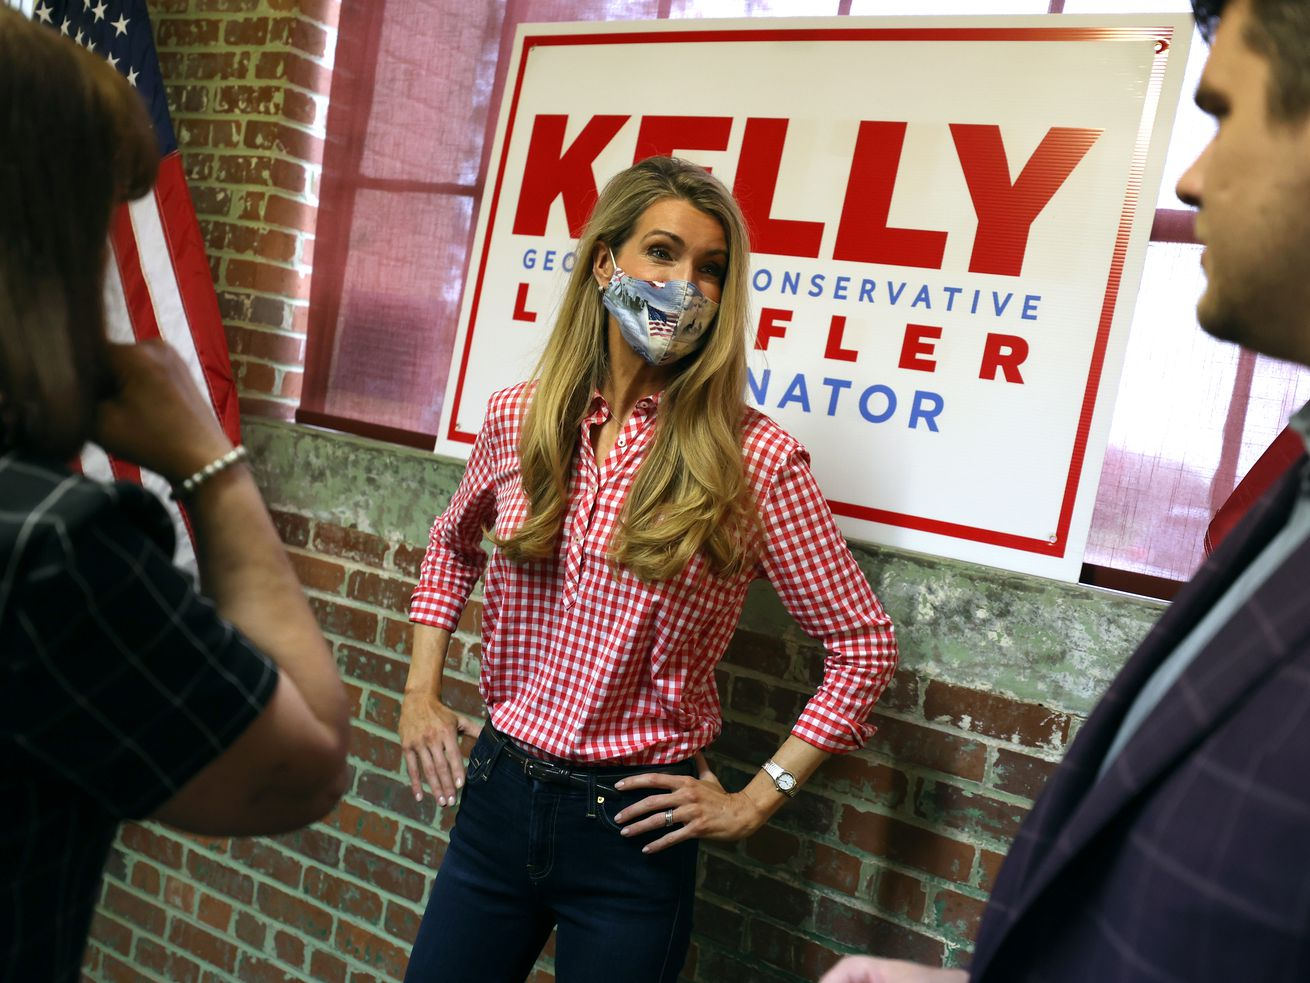 Loeffler, dressed in a red gingham shirt, dark jeans, and a blue mask, stands with her hands on her hips in front of a red and white sign bearing her name. A man stands to her left, and a woman to her right.